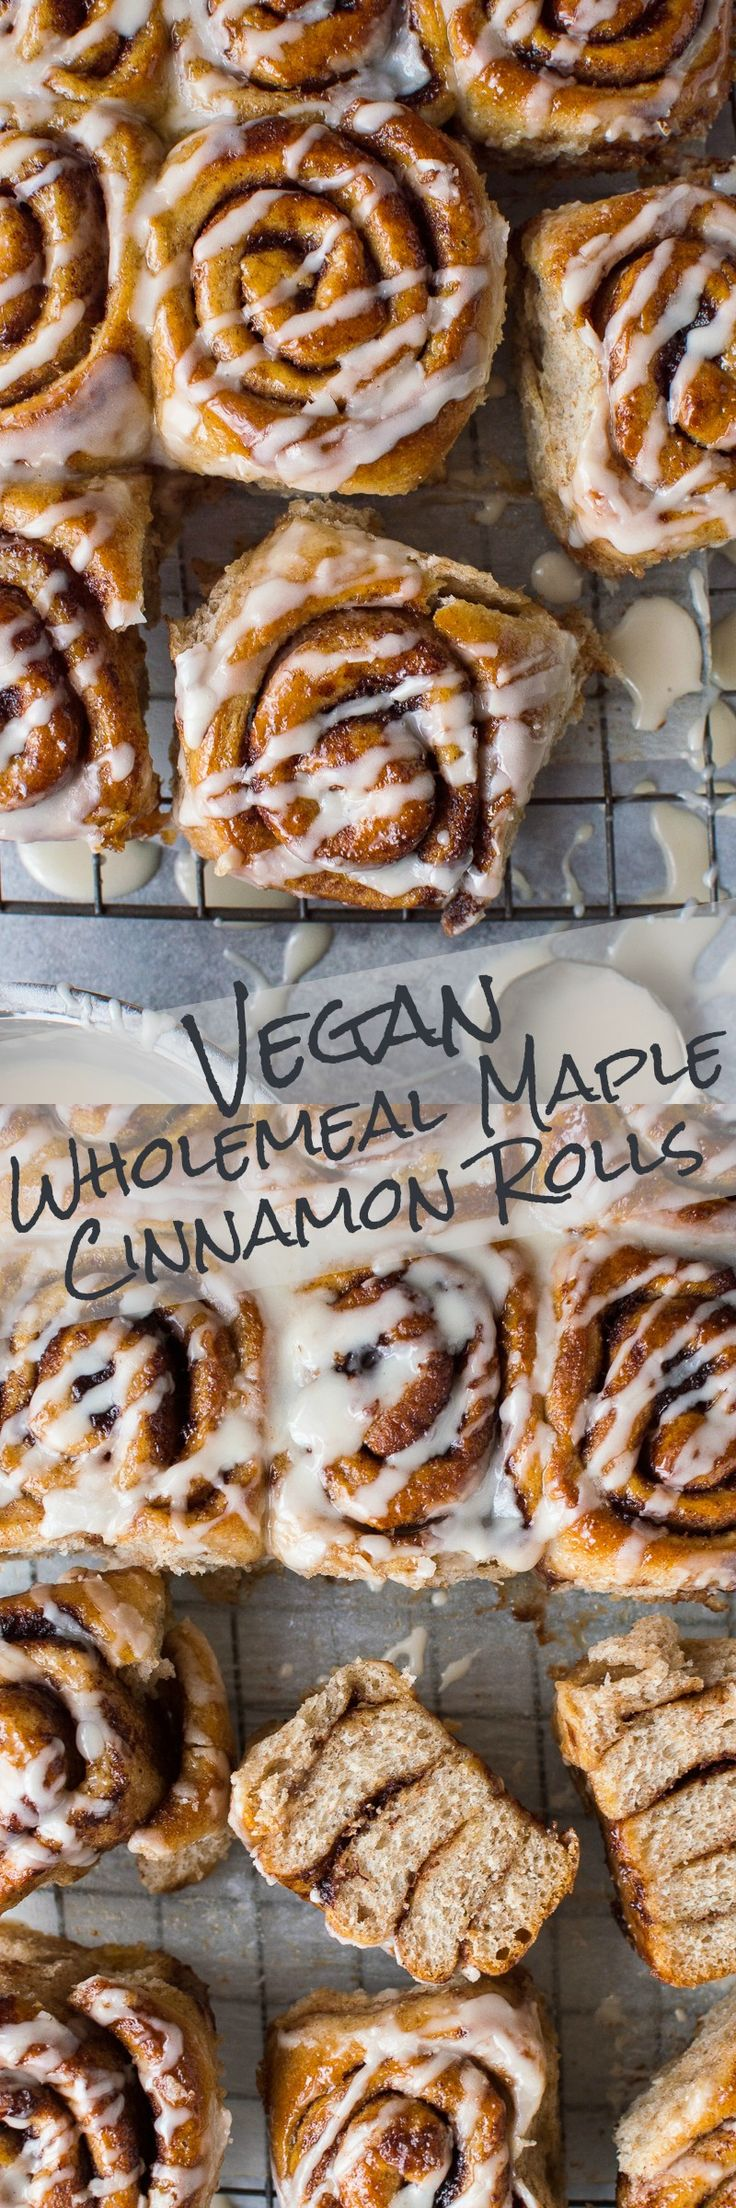 vegan wholemeal maple cinnamon rolls - incredibly good cinnamon buns flavoured with maple syrup that just so happen to be vegan too! #vegan #baking #cinnamonrolls